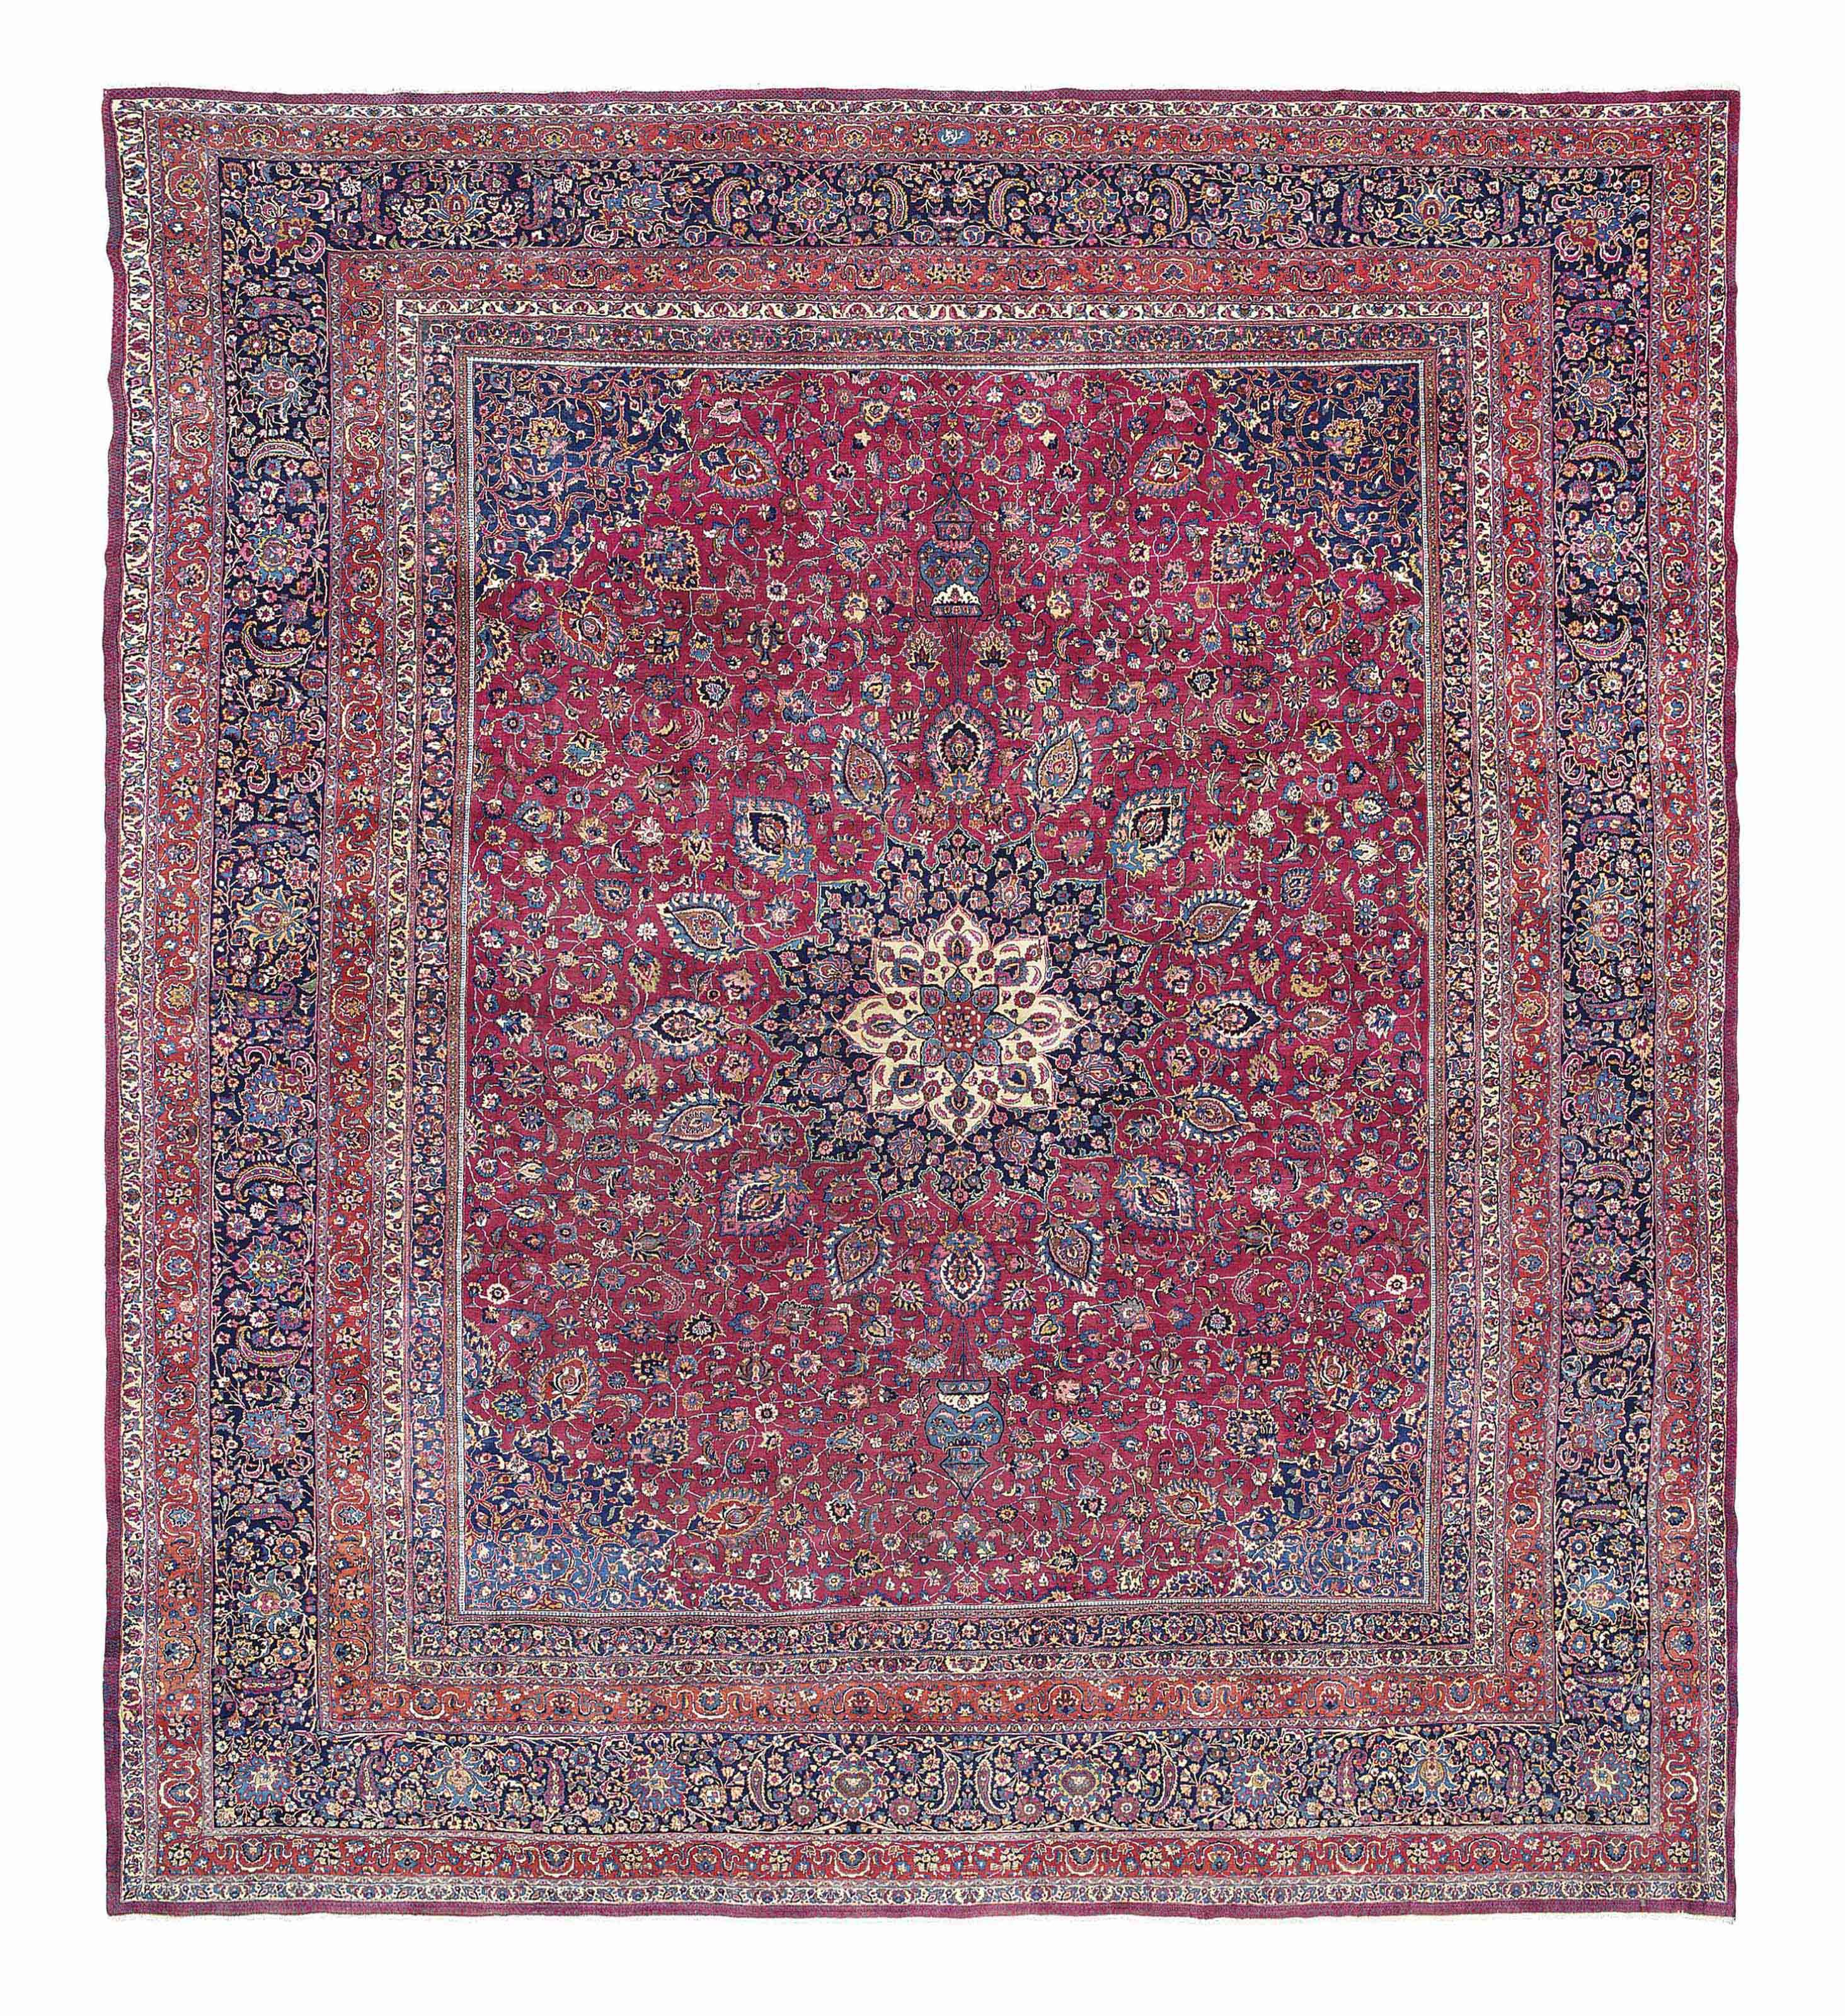 A MESHED CARPET , SIGNED AMOGHLI, NORTH EAST PERSIA, CIRCA